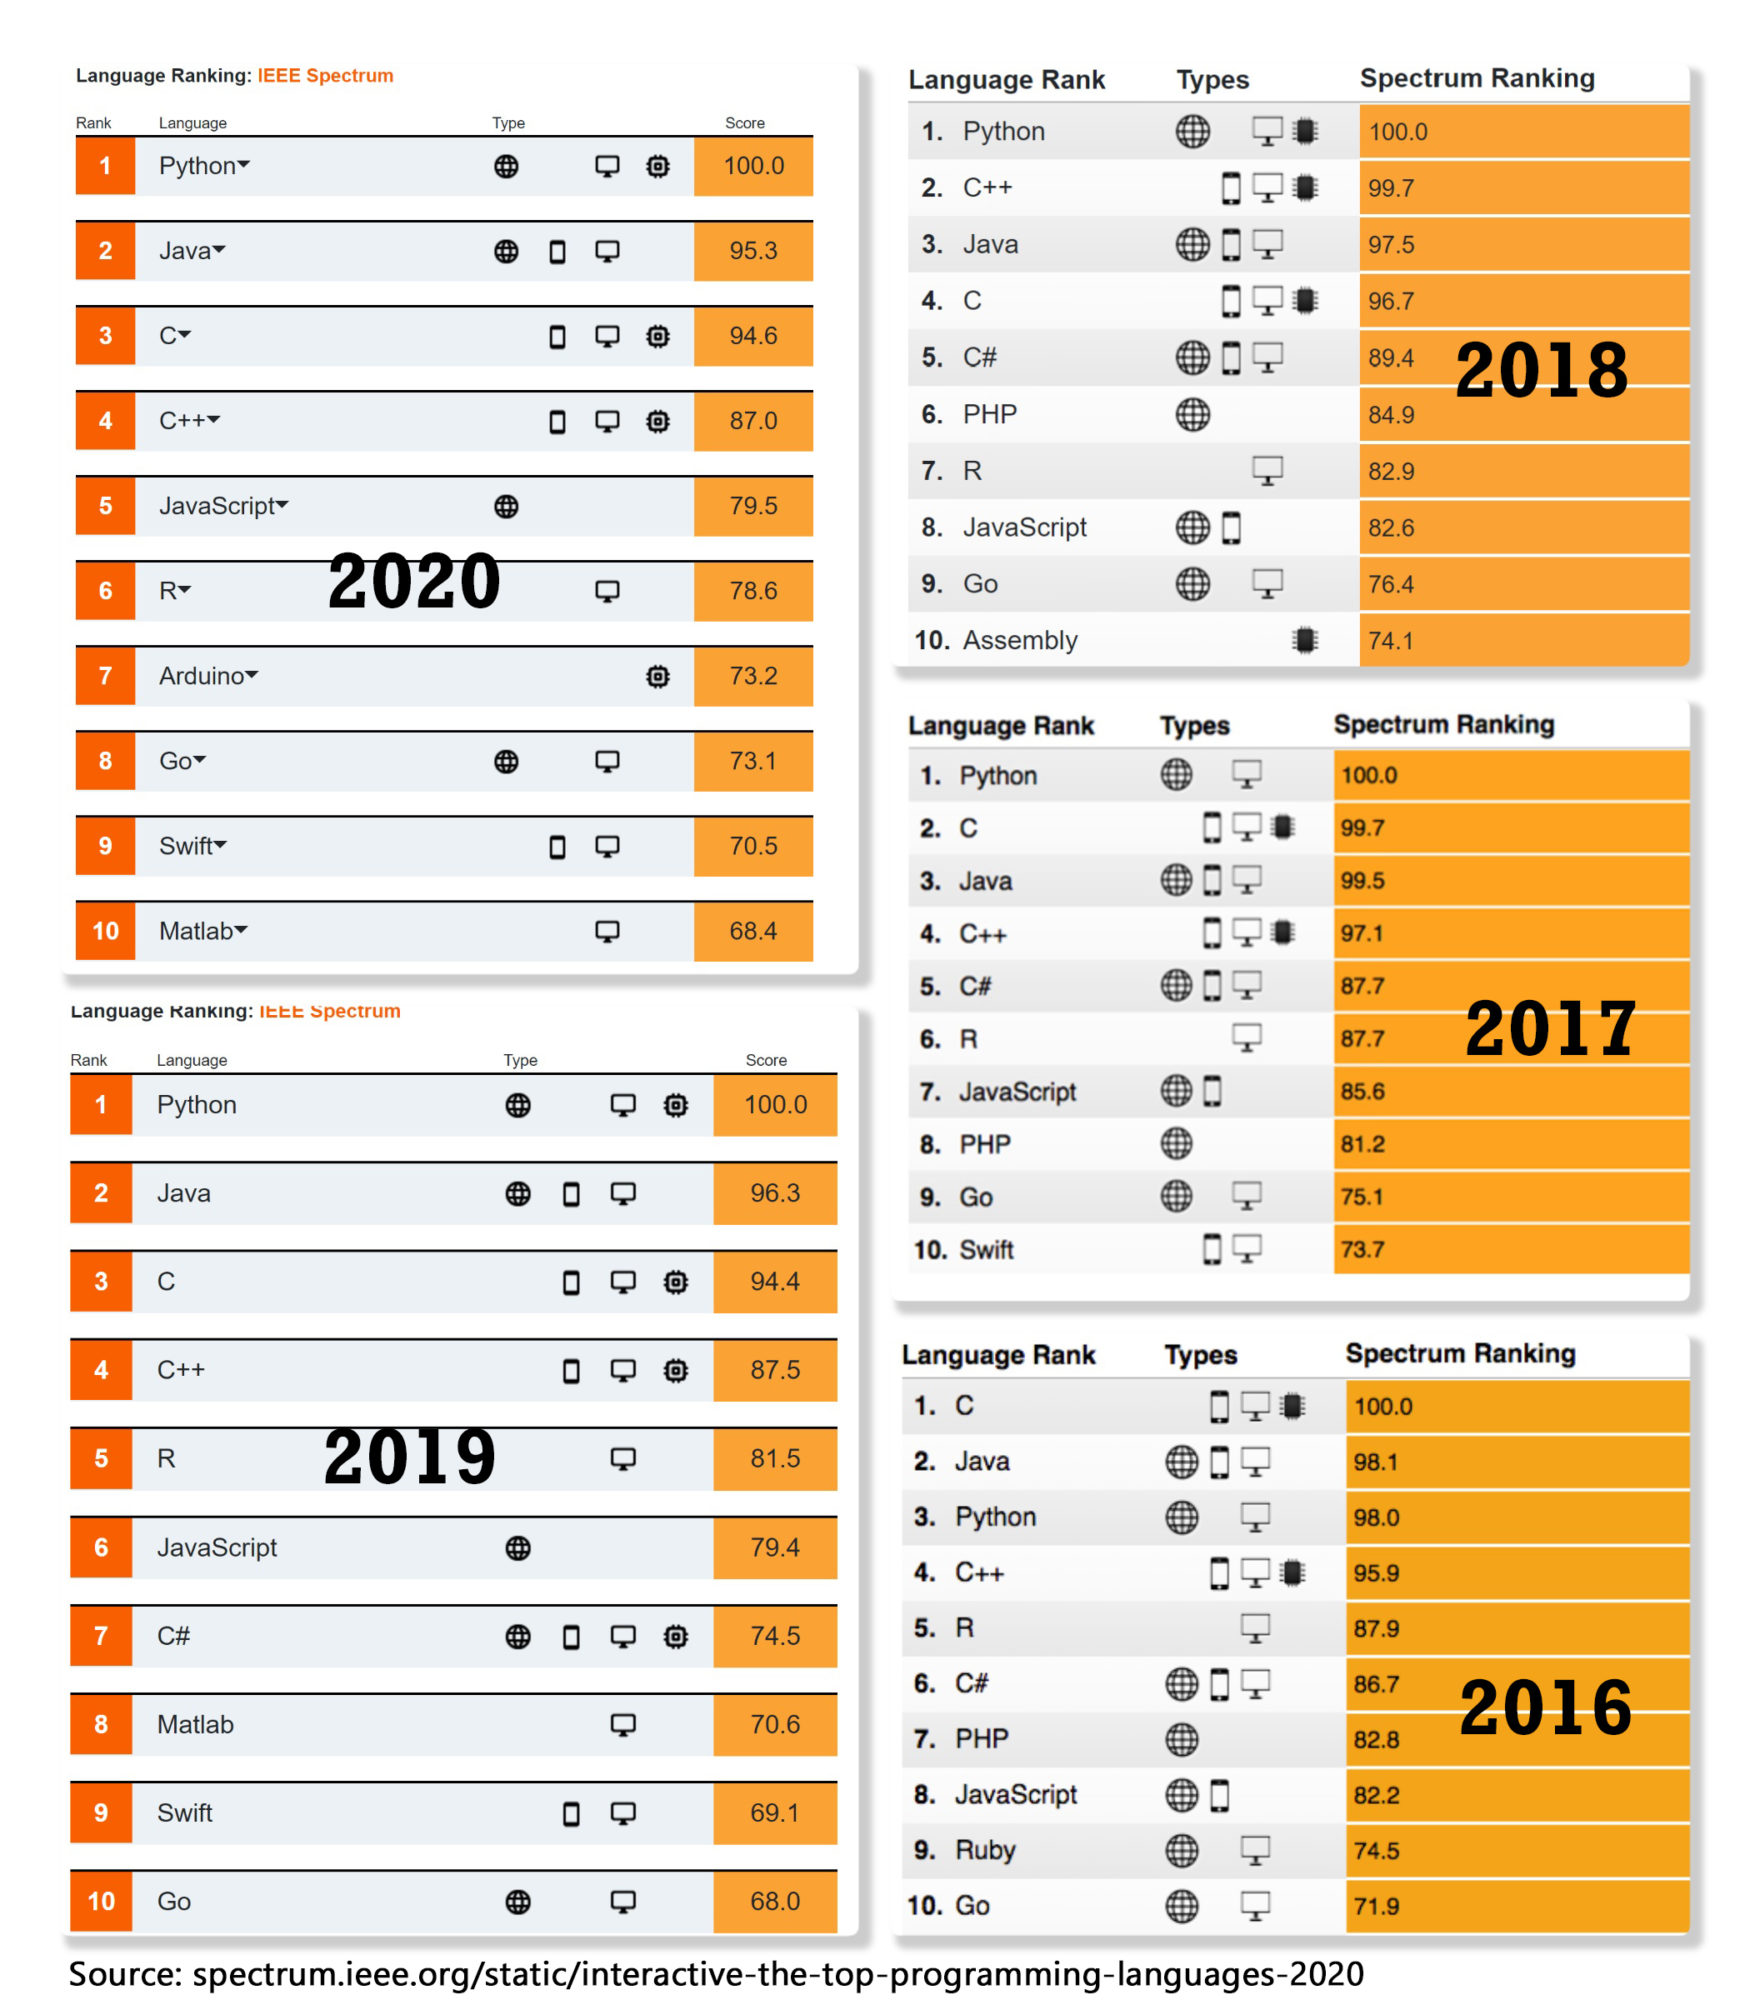 The Top Programming Languages from 2016 to 2020 published by IEEE Spectrum